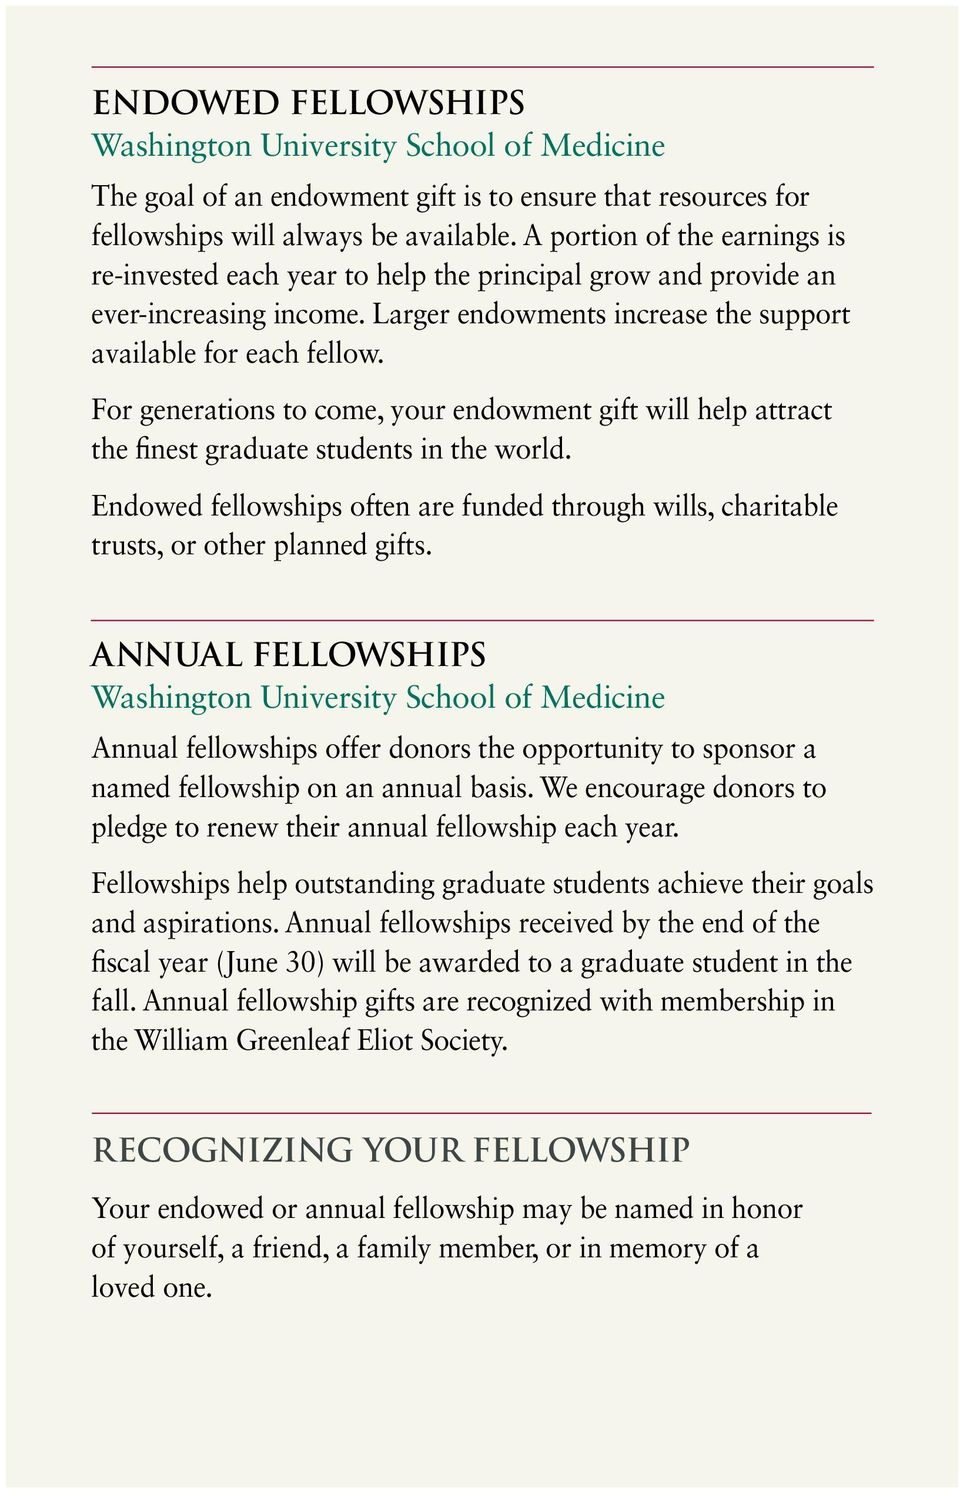 For generations to come, your endowment gift will help attract the finest graduate students in the world. Endowed fellowships often are funded through wills, charitable trusts, or other planned gifts.